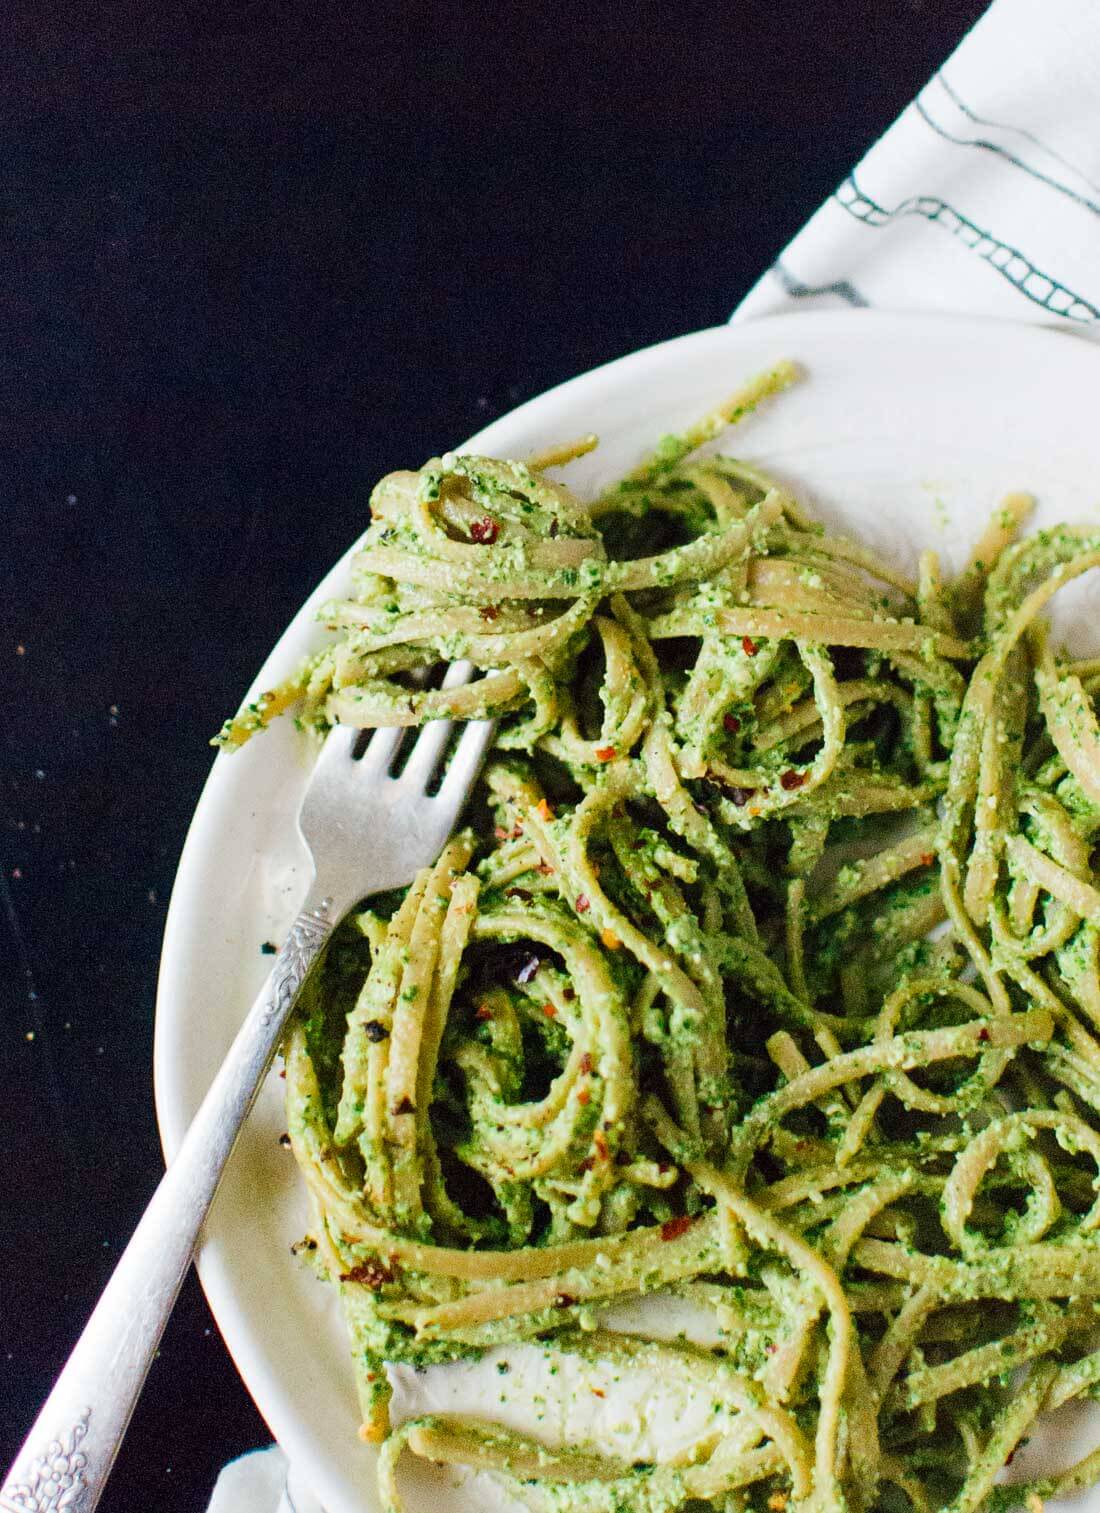 Get your greens and omega-3's with this kale pesto recipe (ready in 5 minutes!) - cookieandkate.com